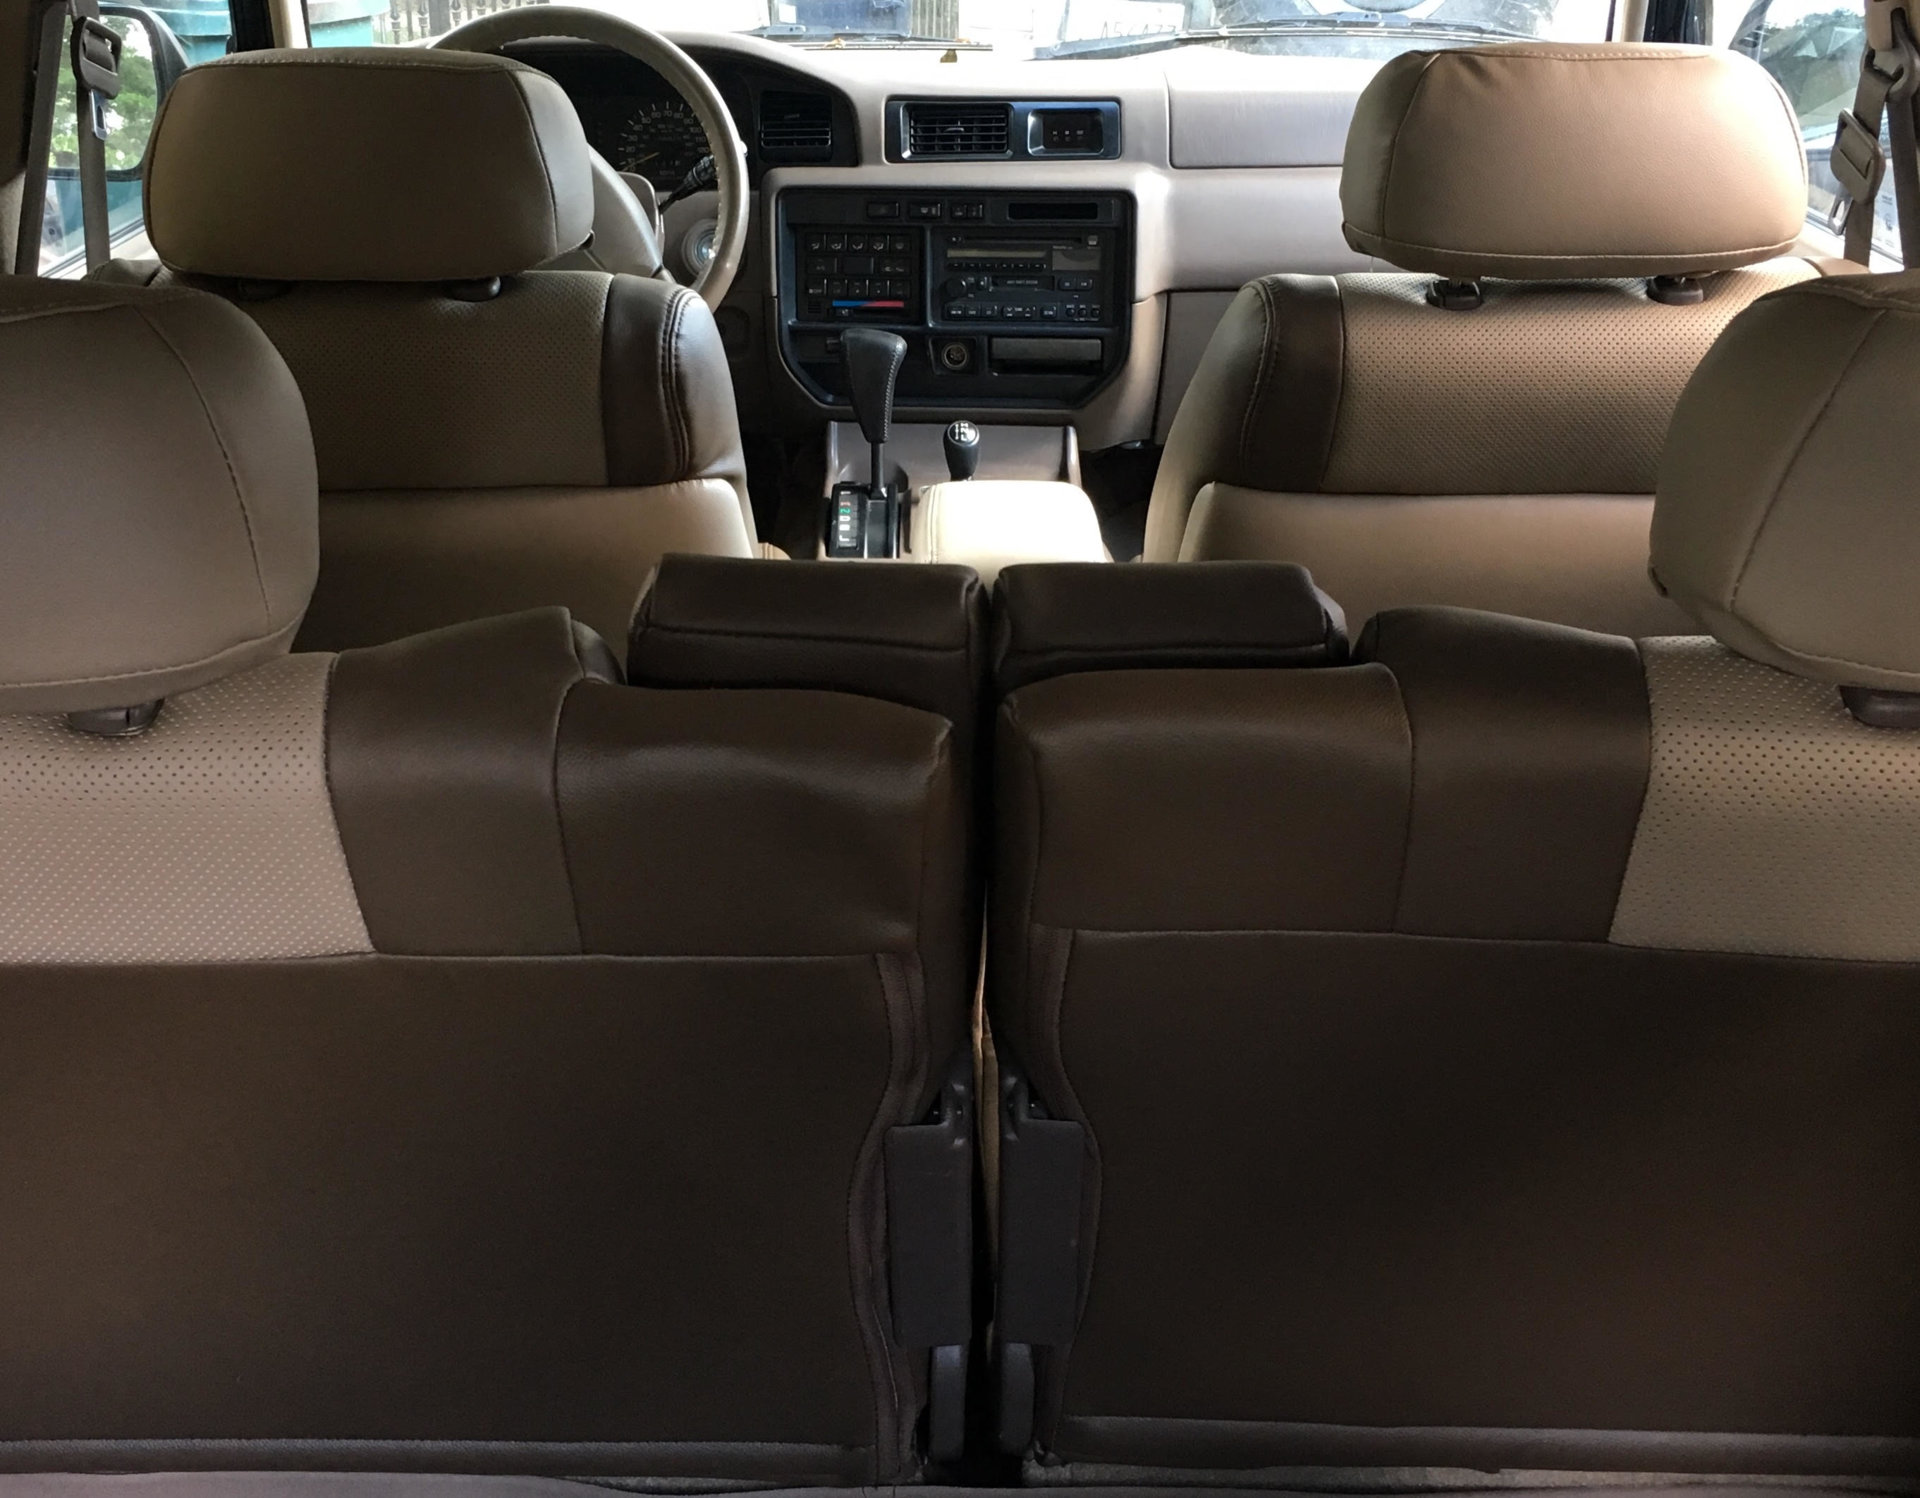 80 Series Replacement Leather.jpg